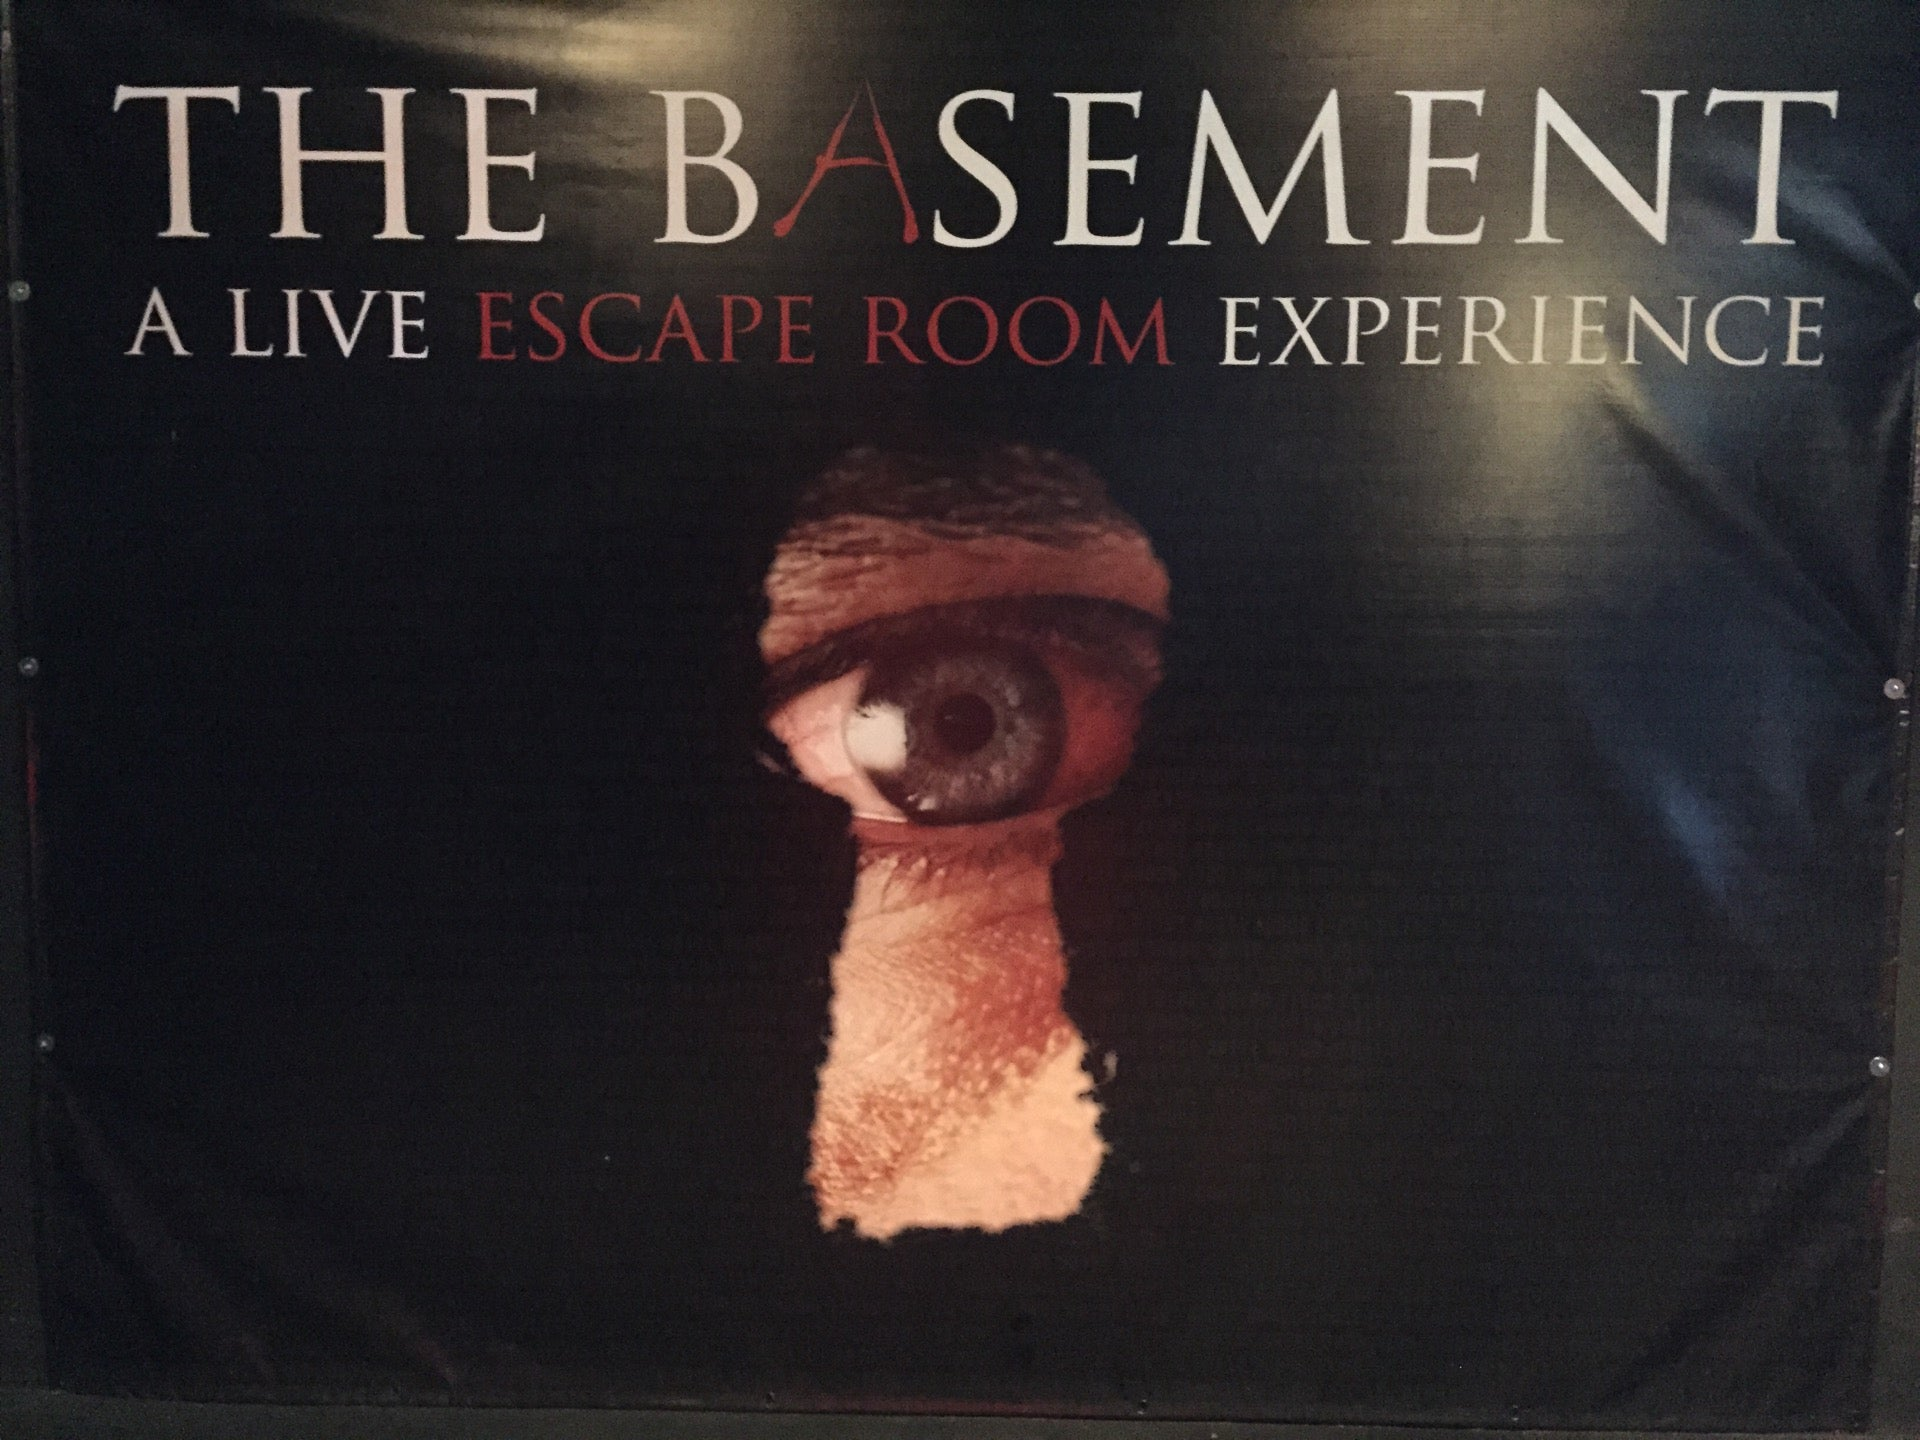 The basement a live escape room experience los angeles tickets schedule seating charts for The basement a live escape room experience events